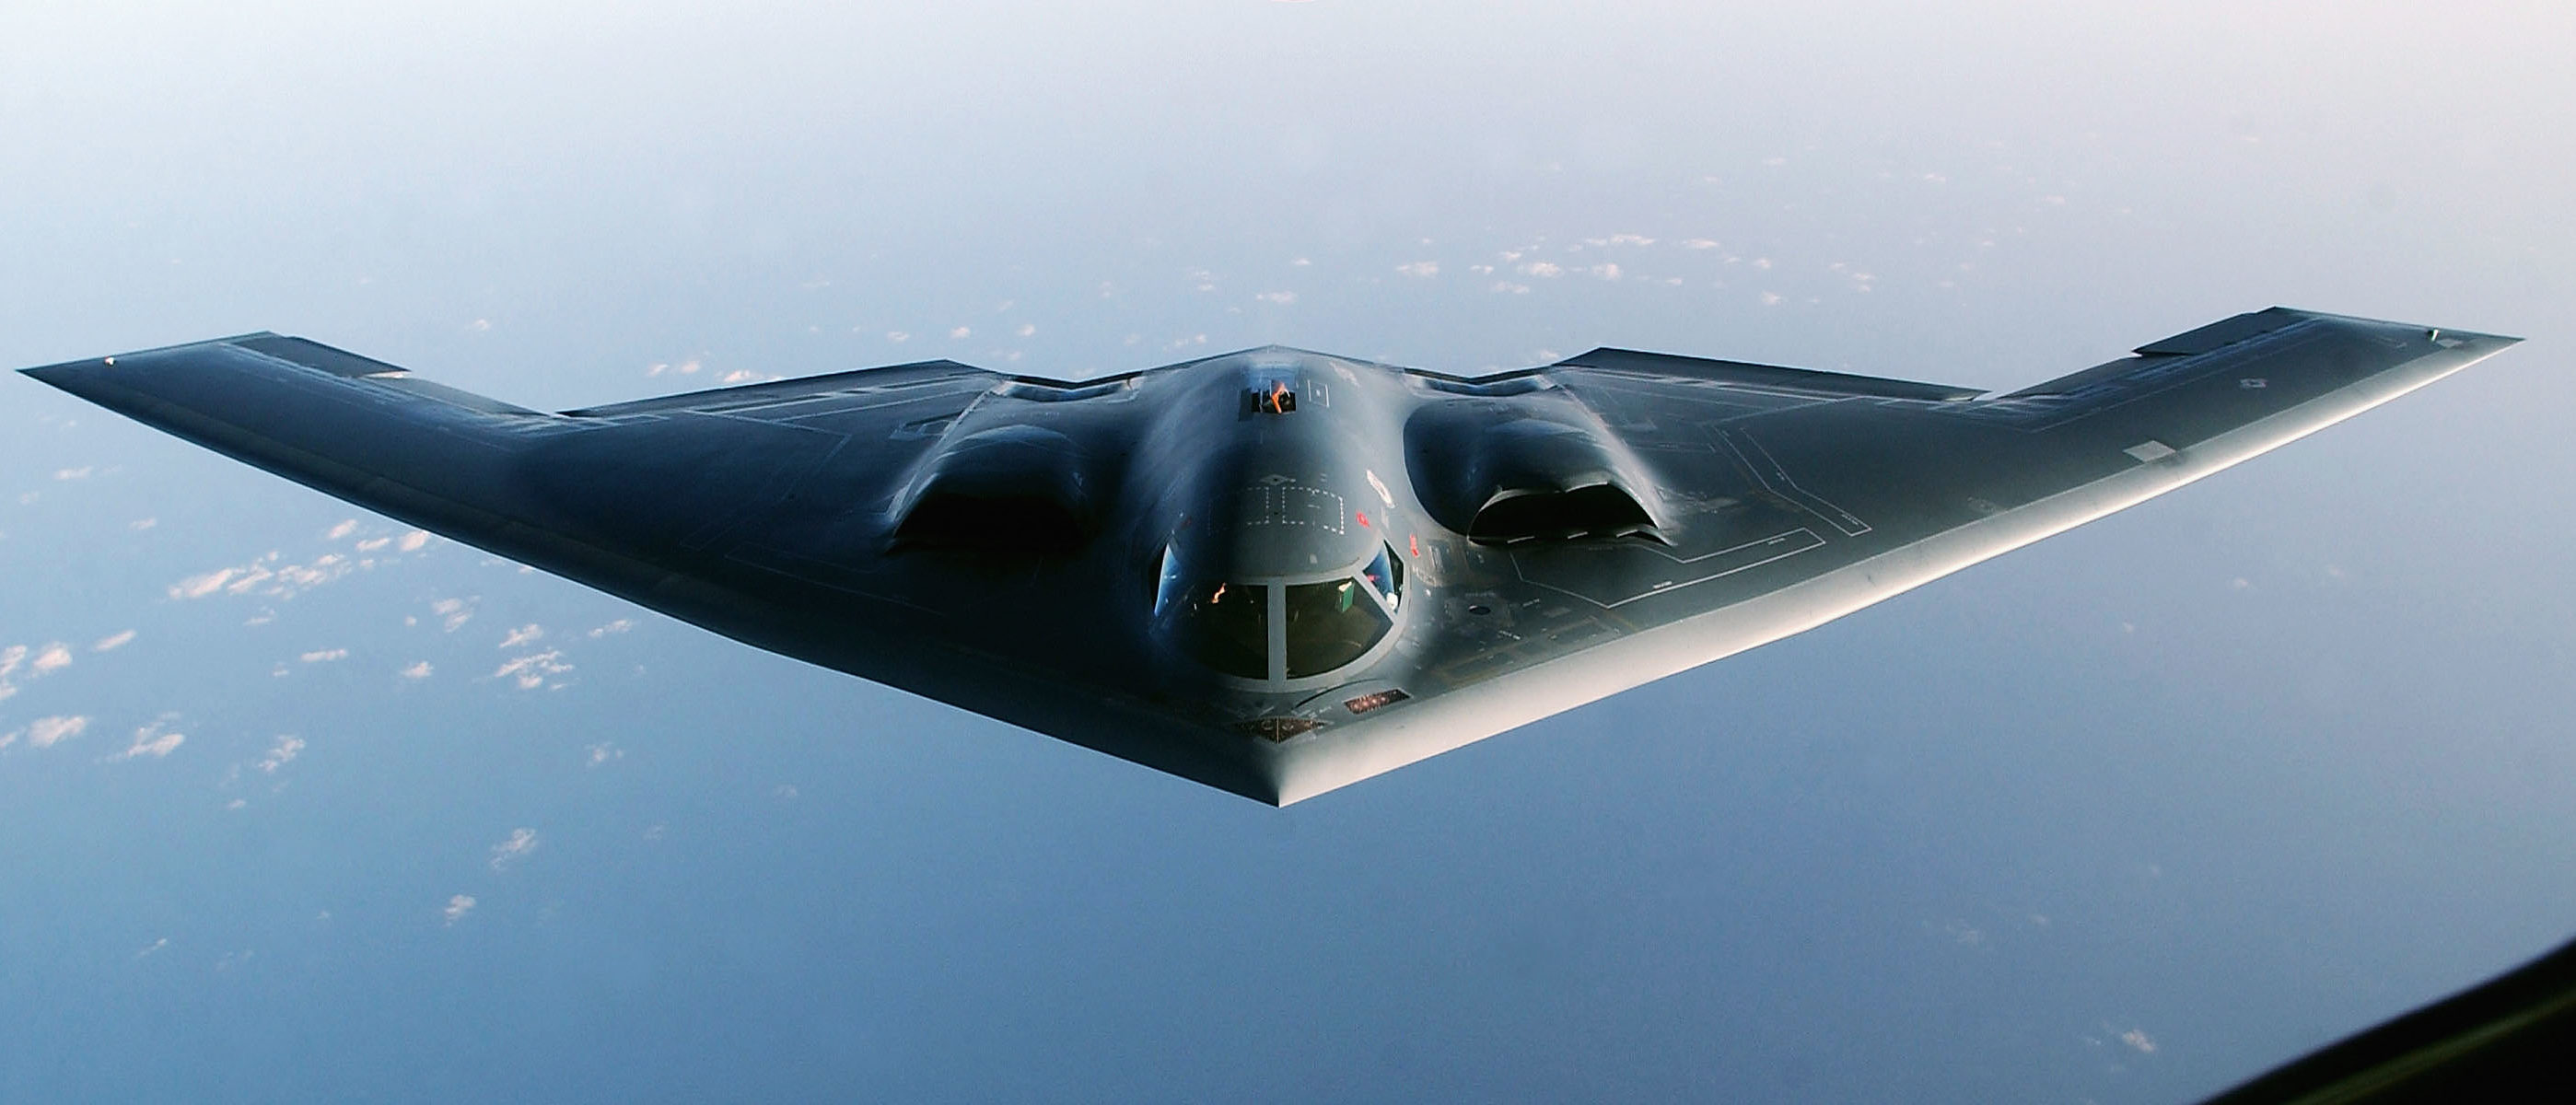 OVER THE INDIAN OCEAN - MARCH 27: A B-2 Spirit Stealth Bomber proceeds to an undisclosed location after completing a mission over Iraq March 27, 2003. The Pentagon has announced its intention to almost double the military ground strength in the Gulf to about 200,000 troops over the next month. (Photo by Cherie A. Thurlby/U.S. Air Force/Getty Images)